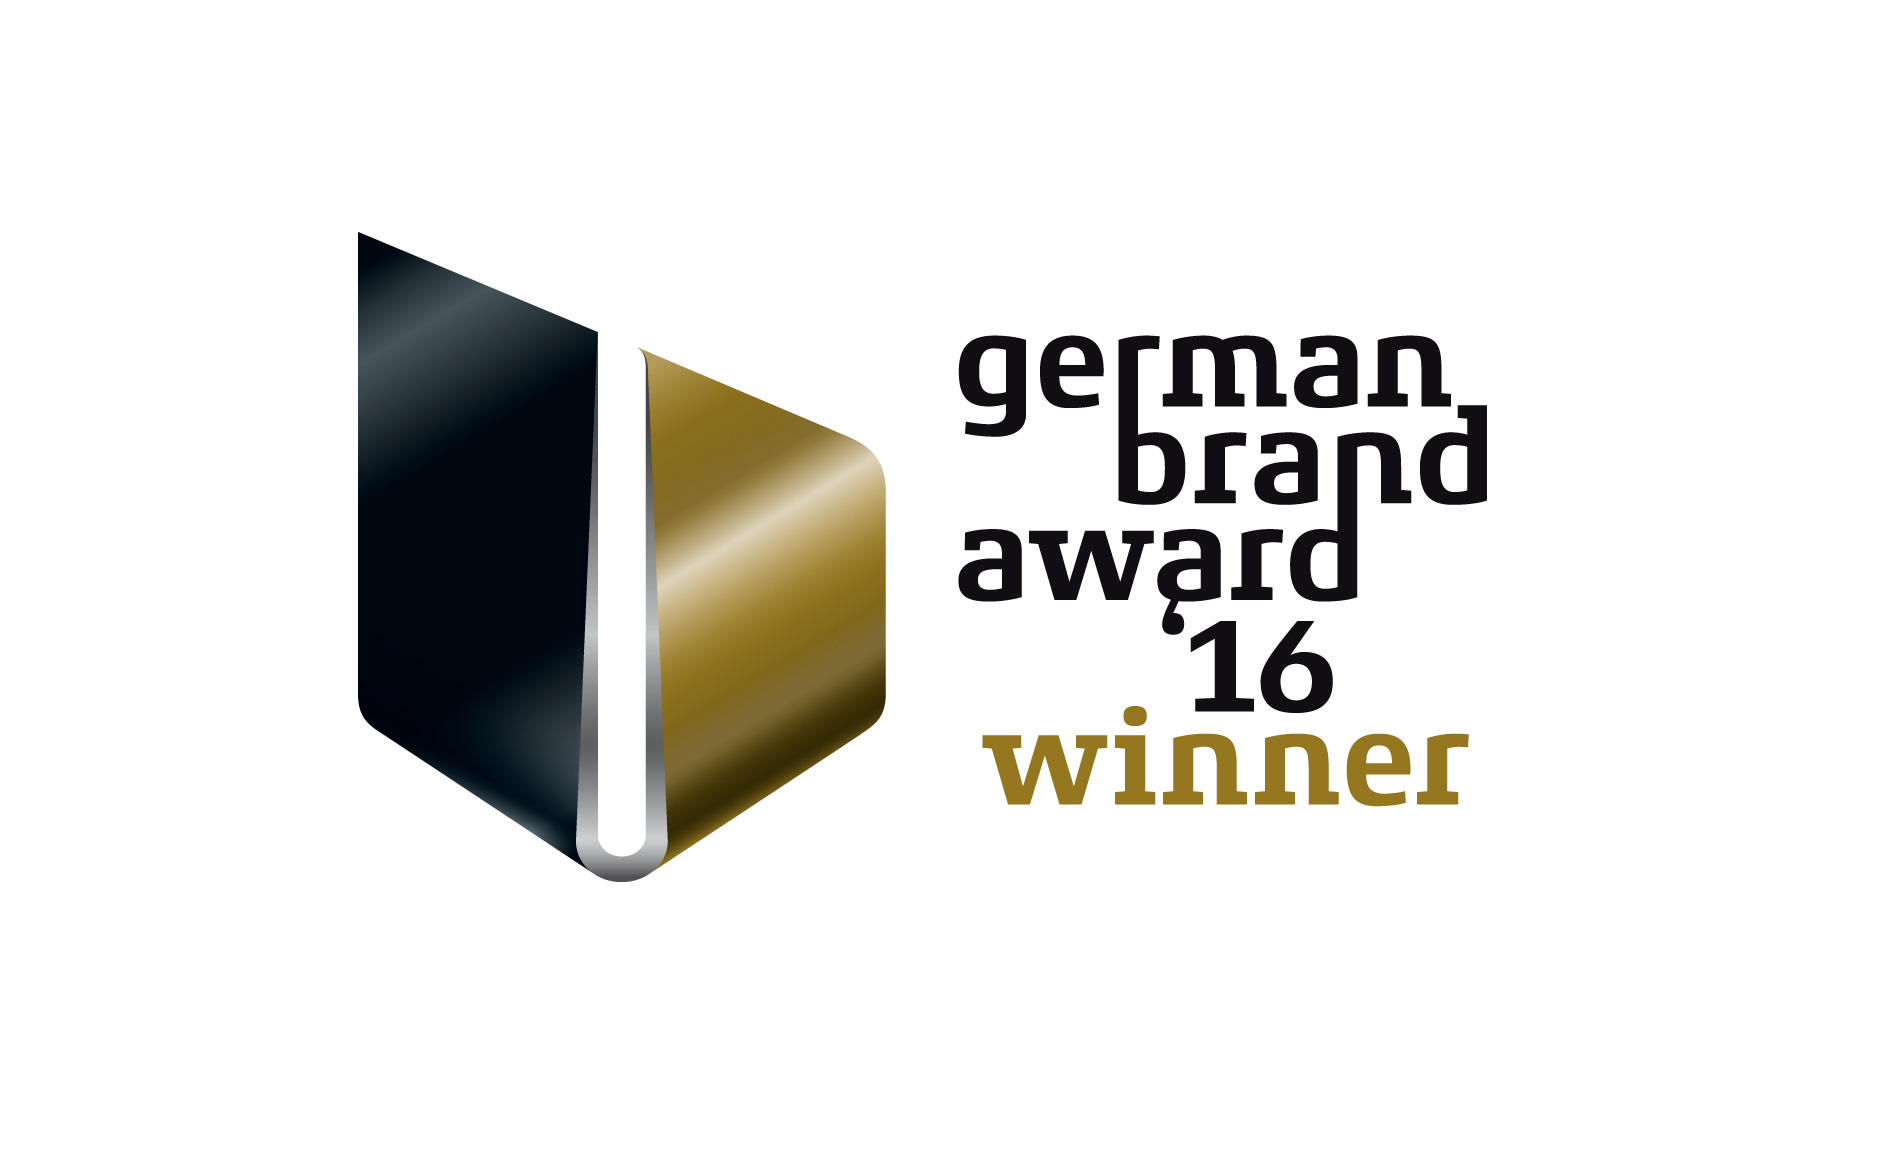 german_brand_award_winner_2016_xs.jpg